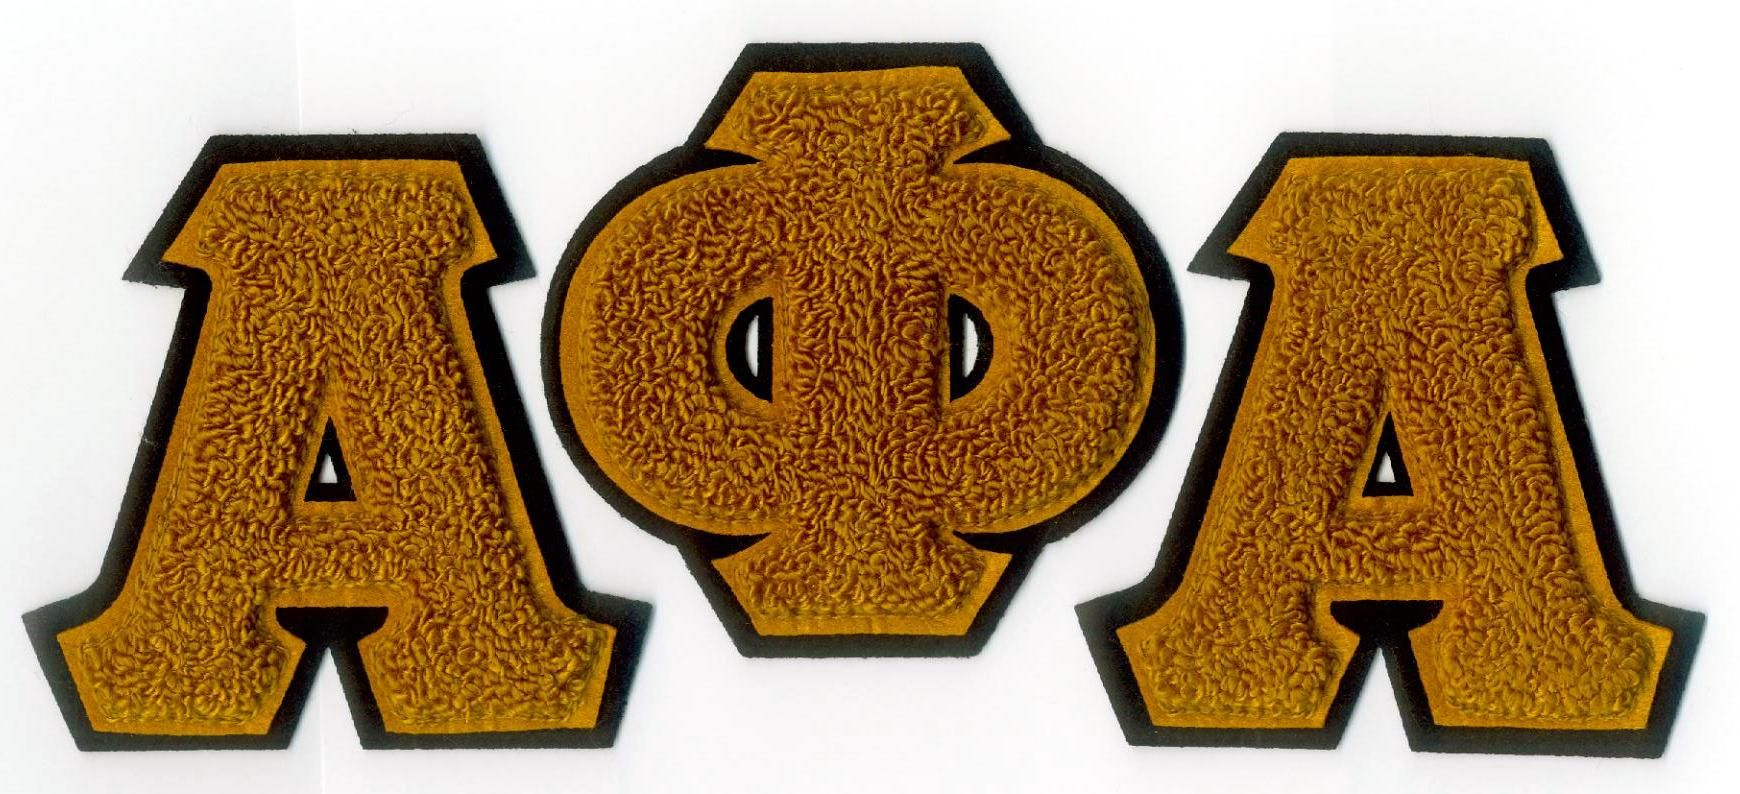 49+ Iron on letter patches michaels ideas